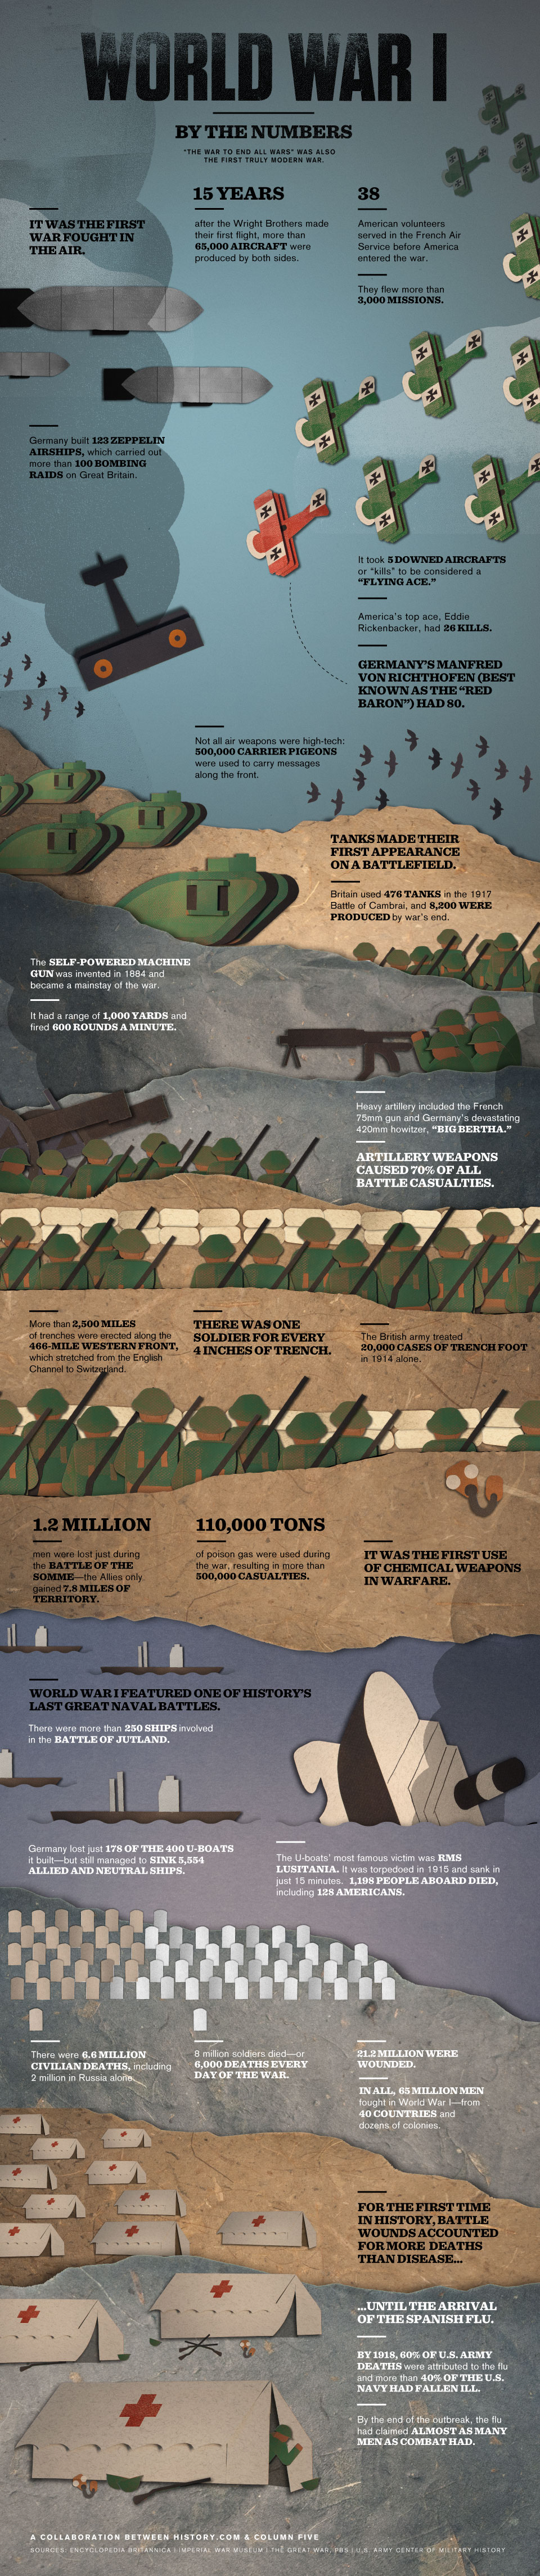 World War I by the Numbers_final